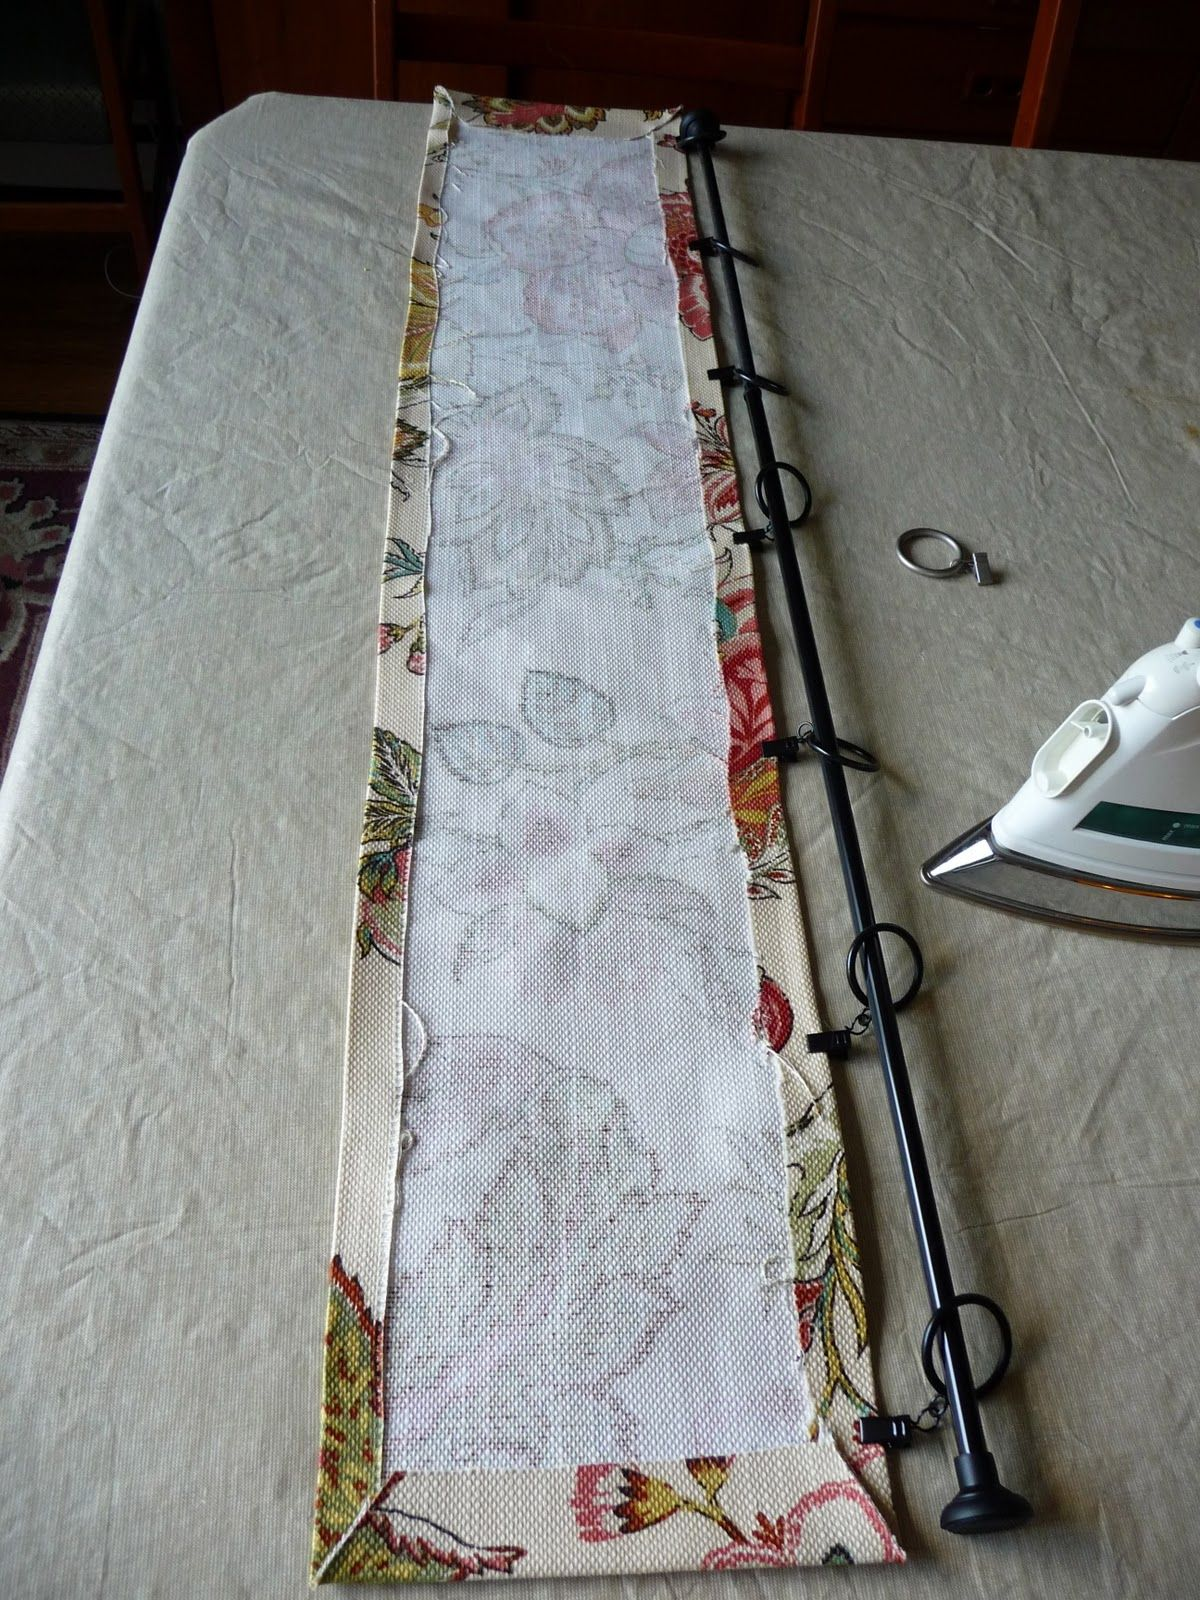 No-sew hanging valance tutorial | House | Pinterest ...